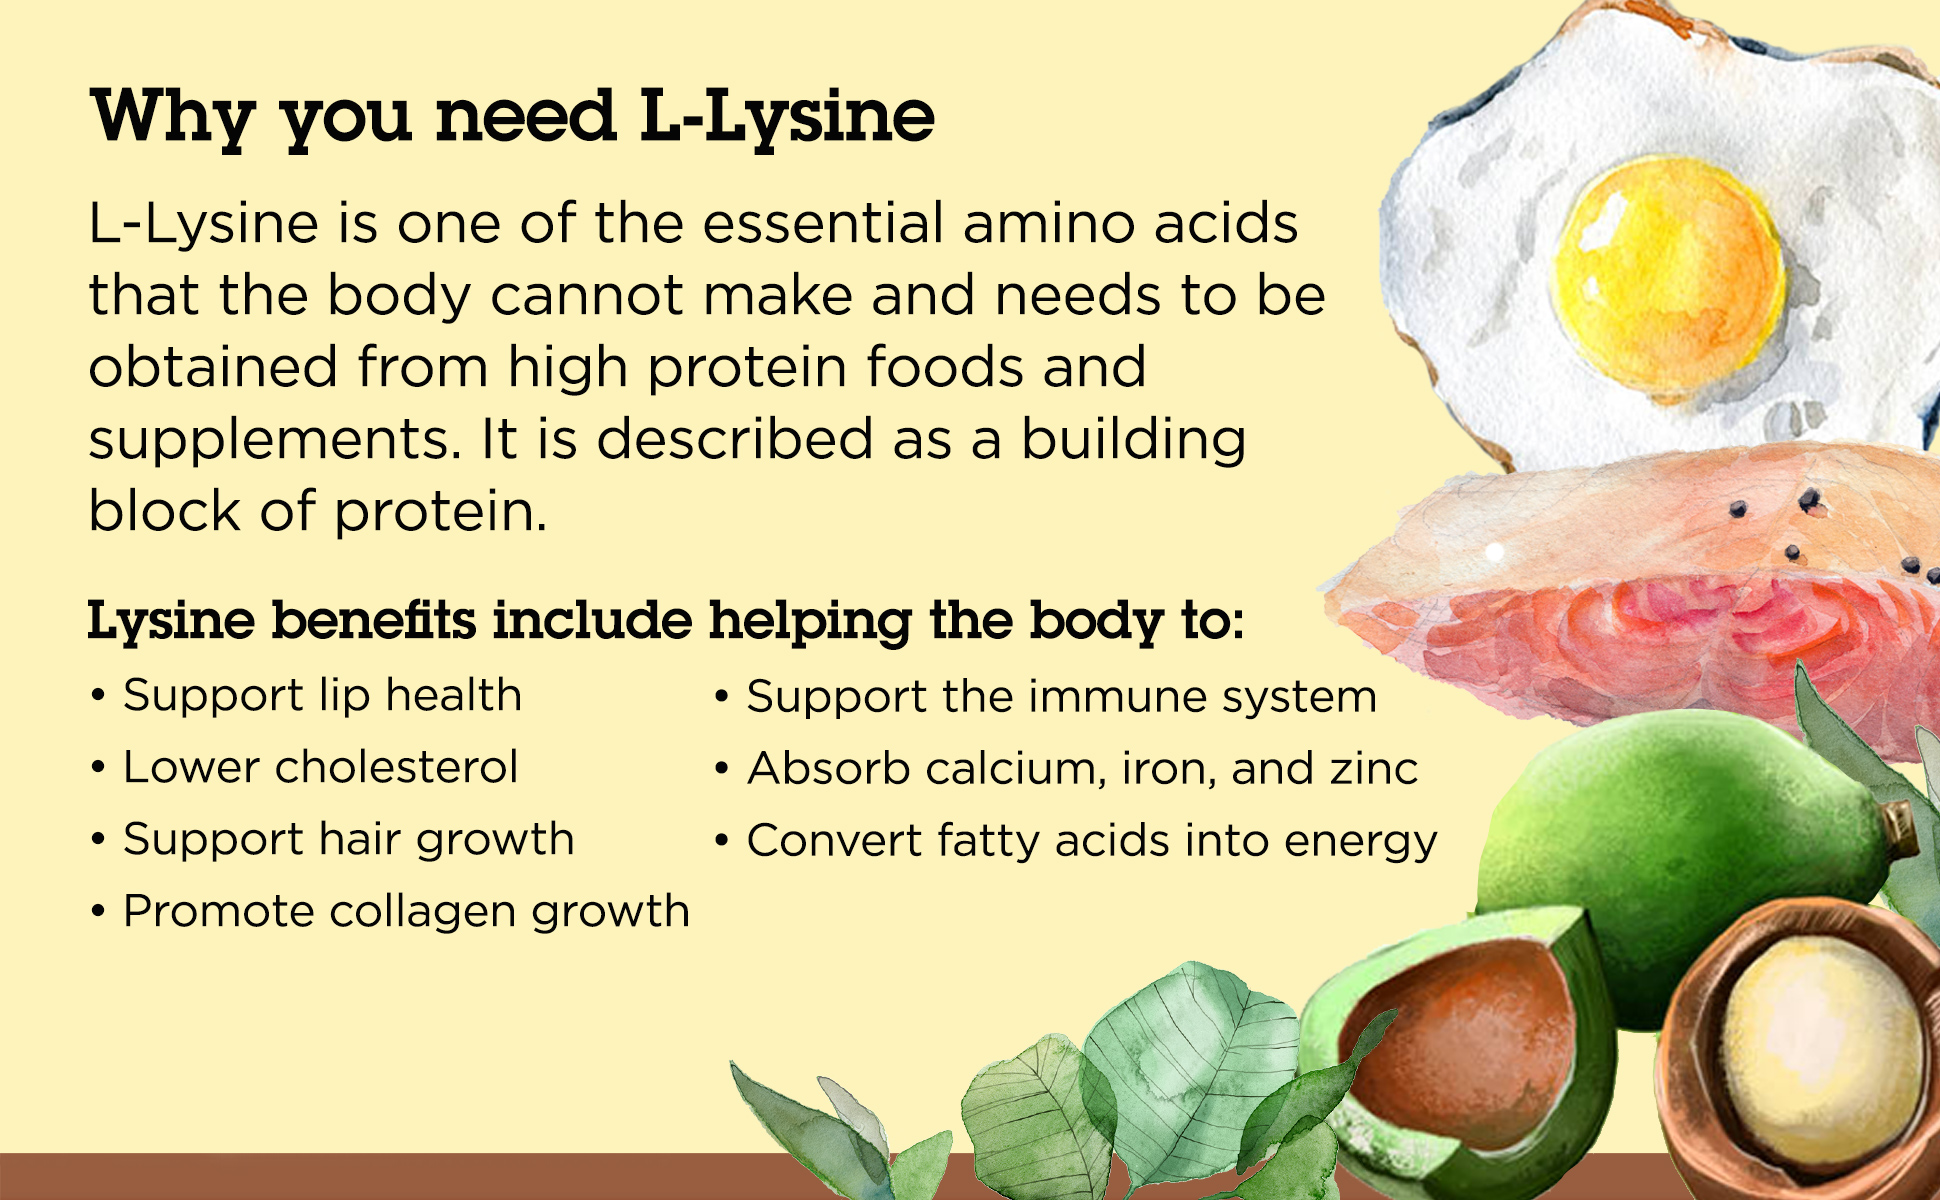 Why your body needs L-Lysine.